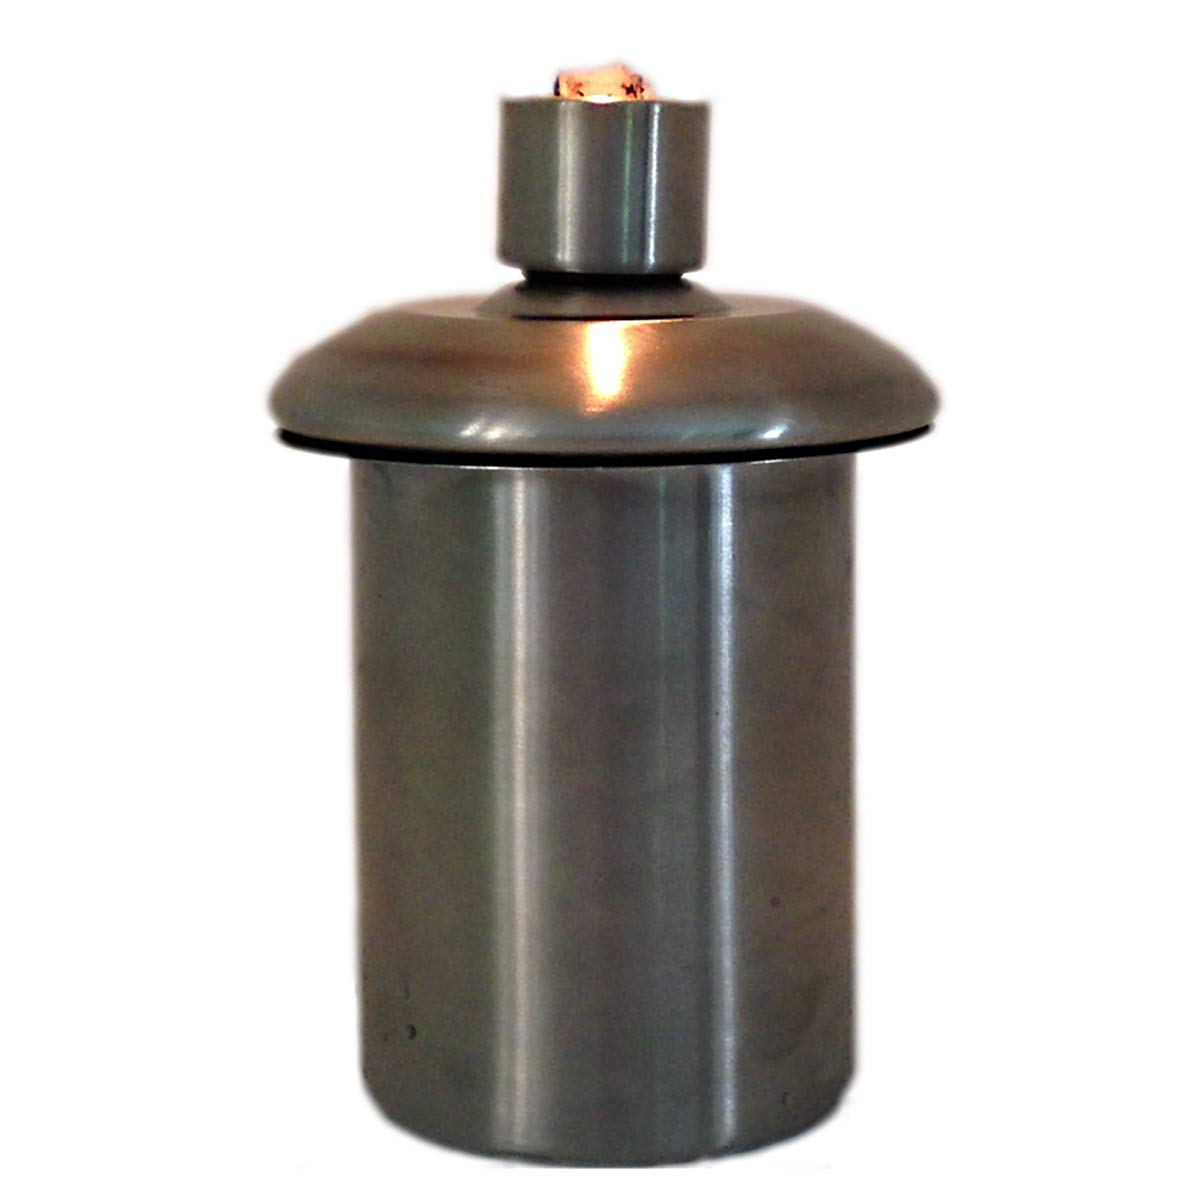 Table Top Tiki Torch or Firepot Stainless Steel Refillable Insert